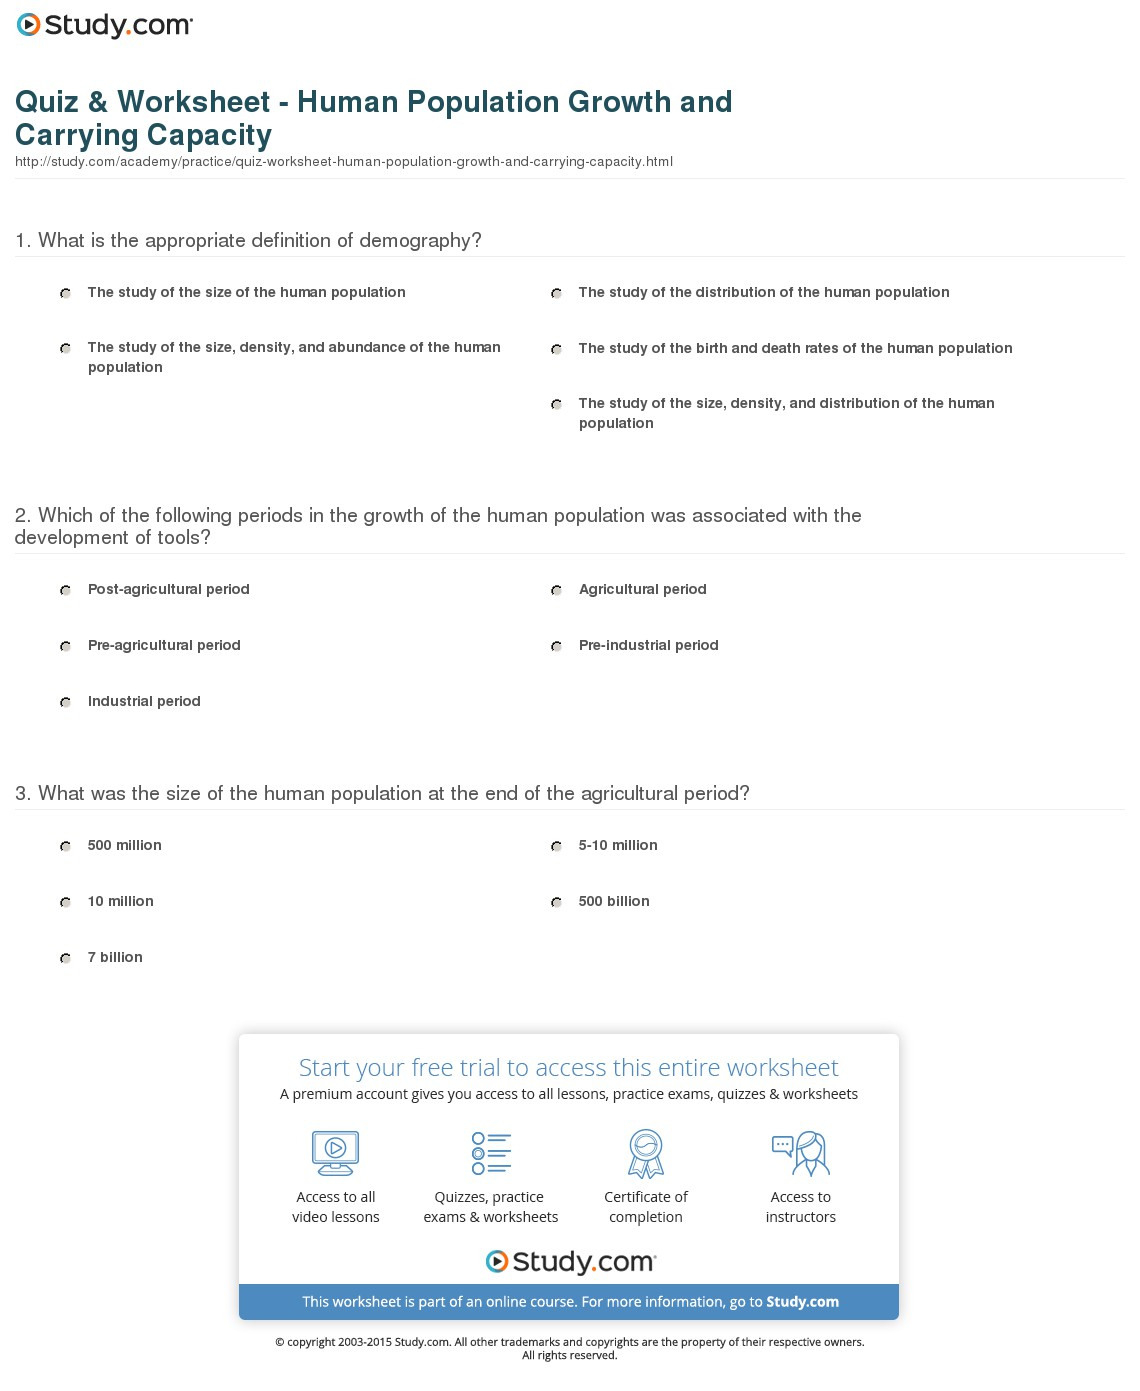 Quiz Worksheet Human Population Growth And Carrying